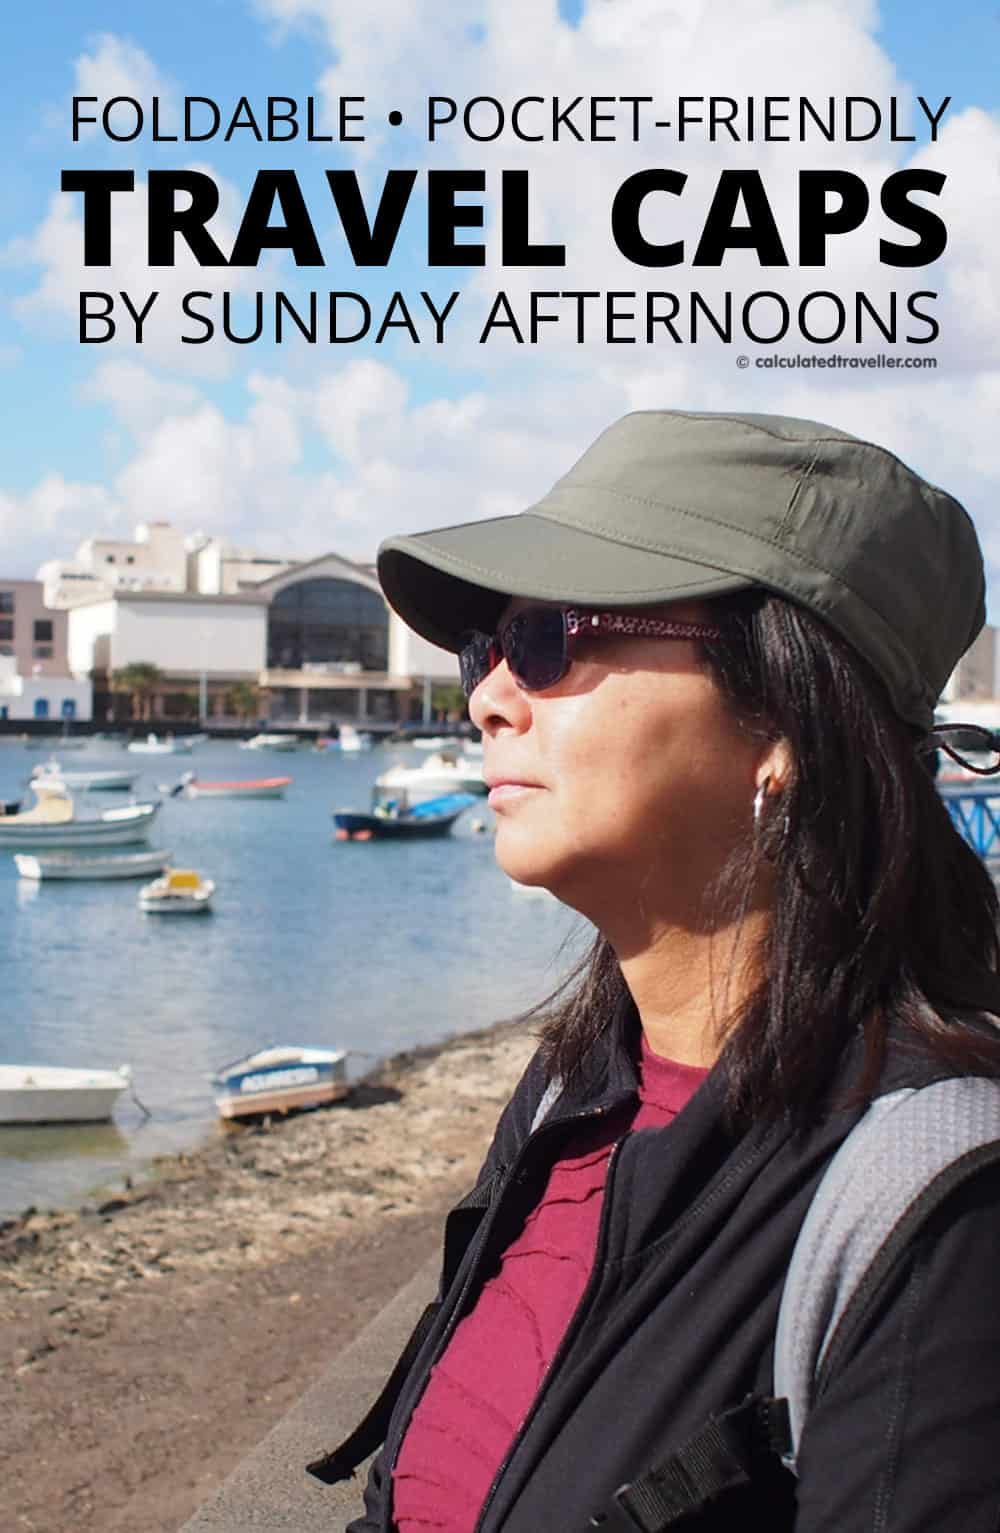 Pocket-friendly Sun Tripper Cap and Eclipse Cap by Sunday Afternoons. Foldable, Packable and Pocket-Friendly.